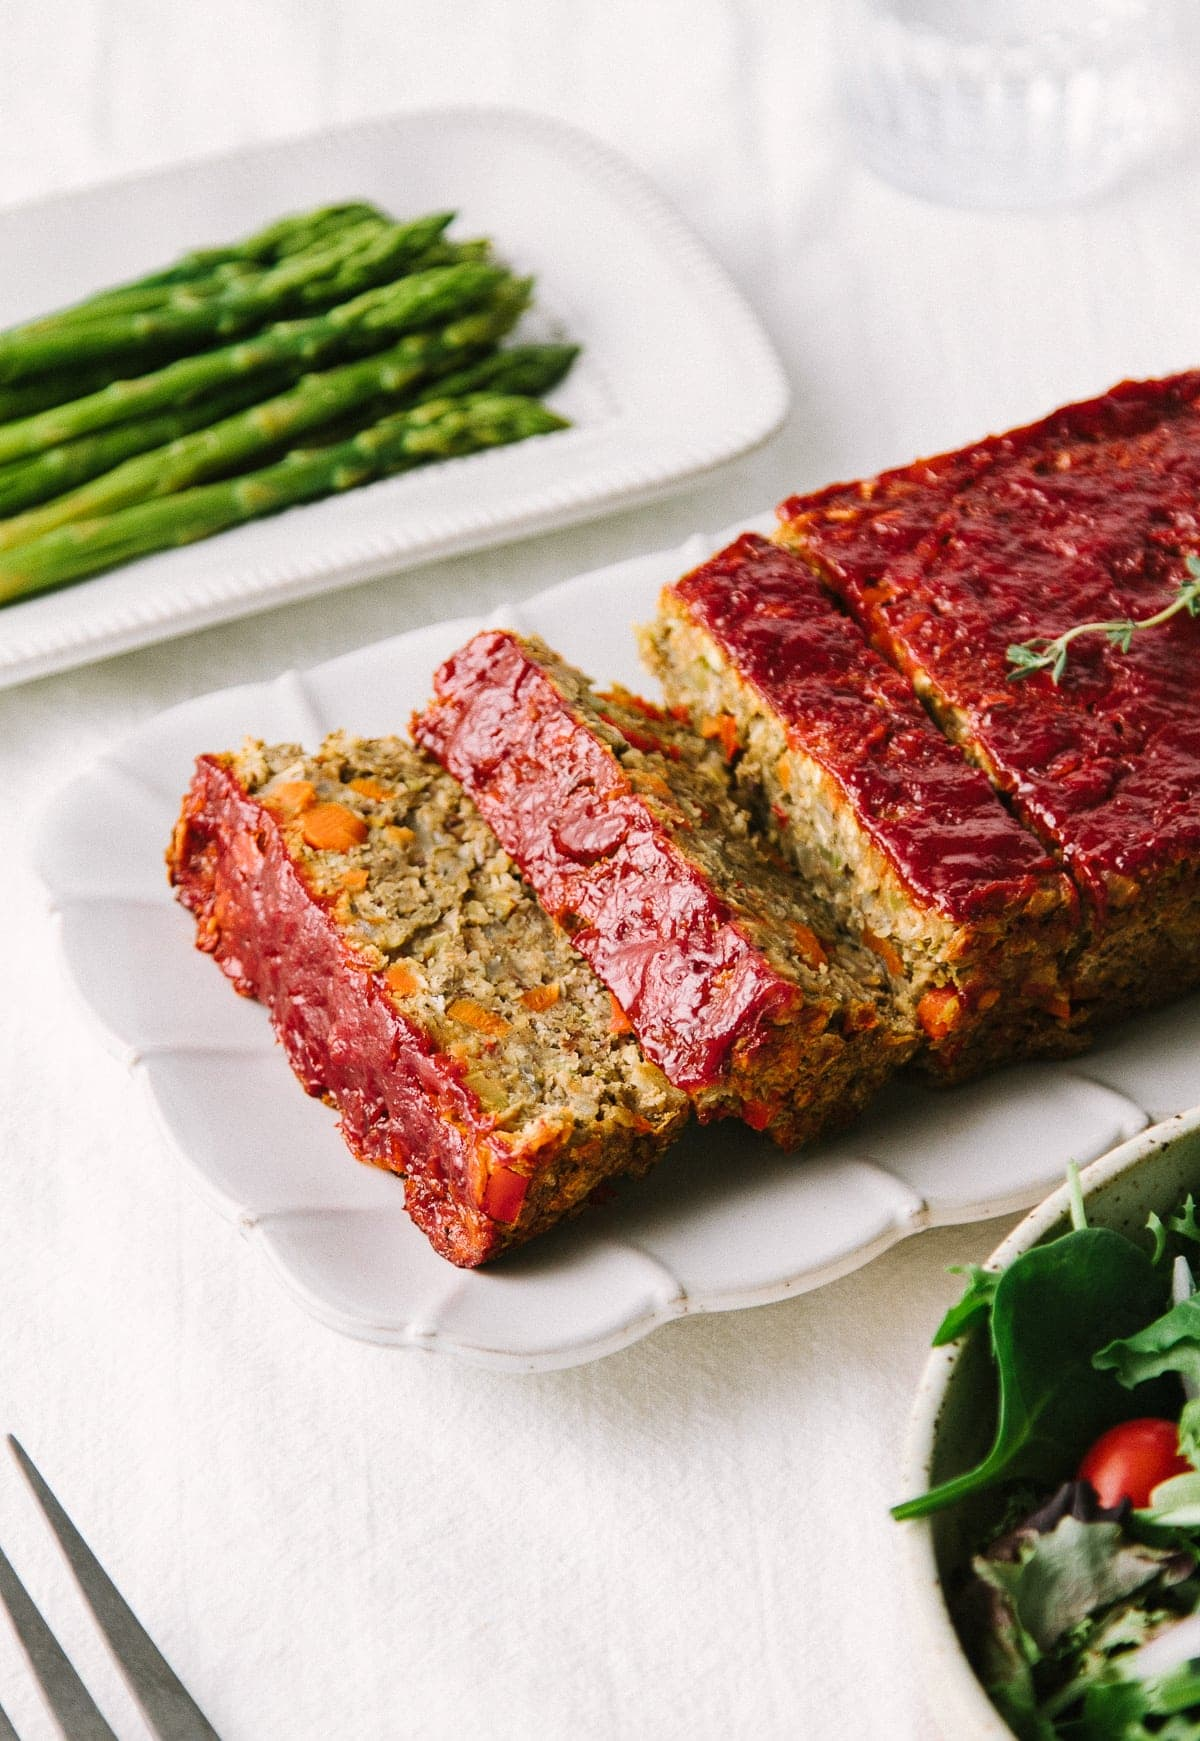 The Ultimate Vegetable Lentil Loaf The Simple Veganista